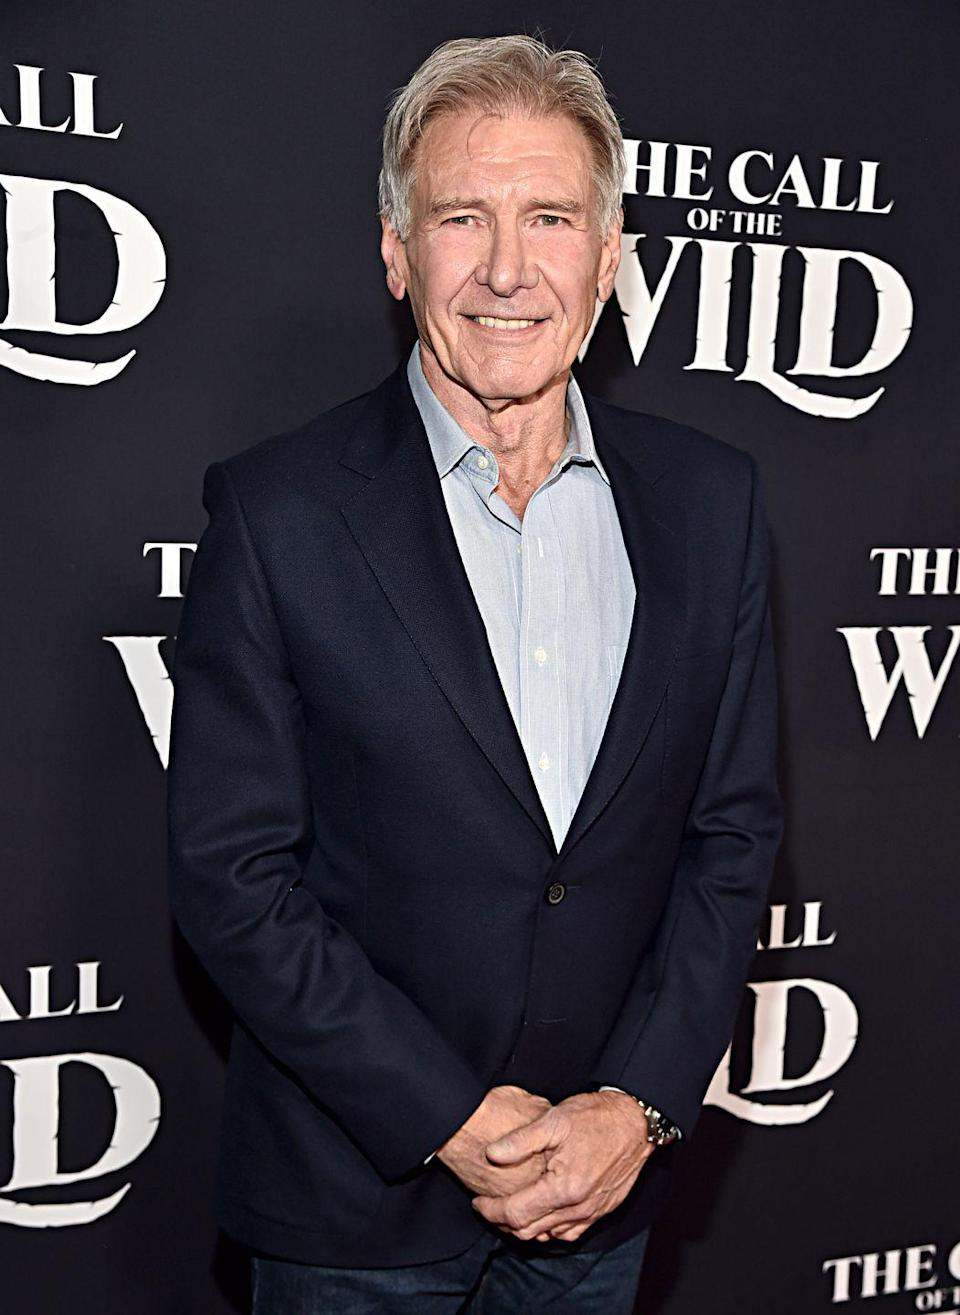 """<p>Even though Harrison Ford filmed a cameo for <em>E.T. the Extra-Terrestrial, </em>the <a href=""""https://screenrant.com/et-movie-harrison-ford-cameo-cut-why/"""" rel=""""nofollow noopener"""" target=""""_blank"""" data-ylk=""""slk:actor's scene didn't make the cut"""" class=""""link rapid-noclick-resp"""">actor's scene didn't make the cut</a>. The film's director, Steven Spielberg, cut Ford playing Elliot's teacher from the final version of the film. </p>"""